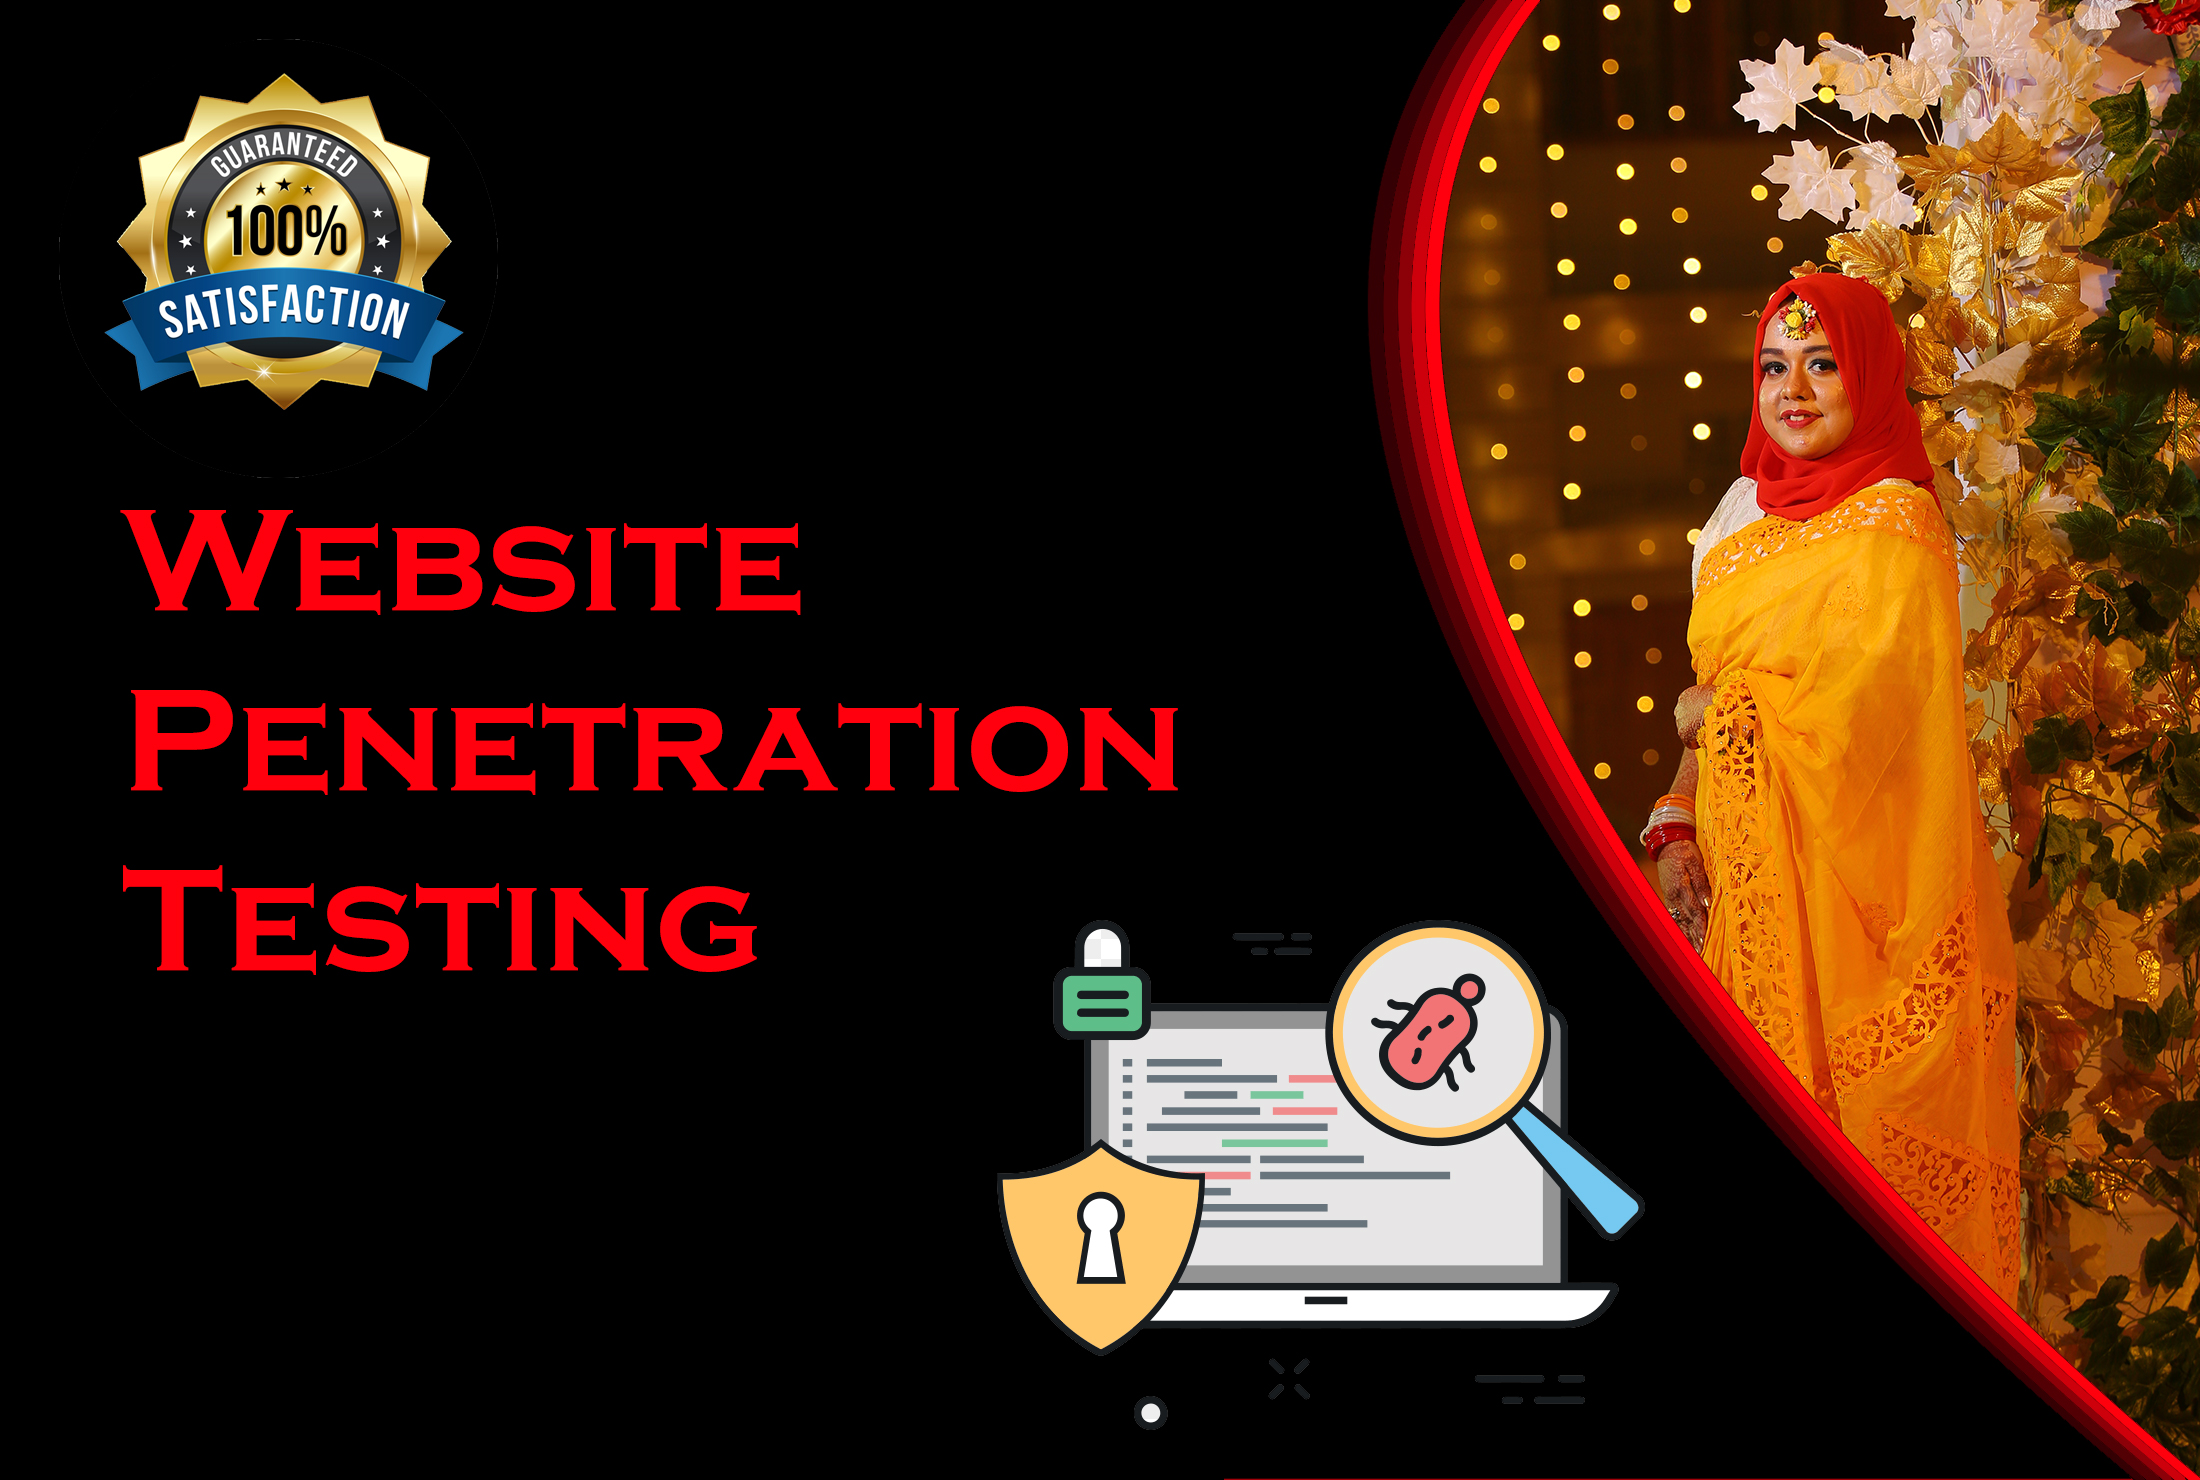 Perform penetration tests for web with report